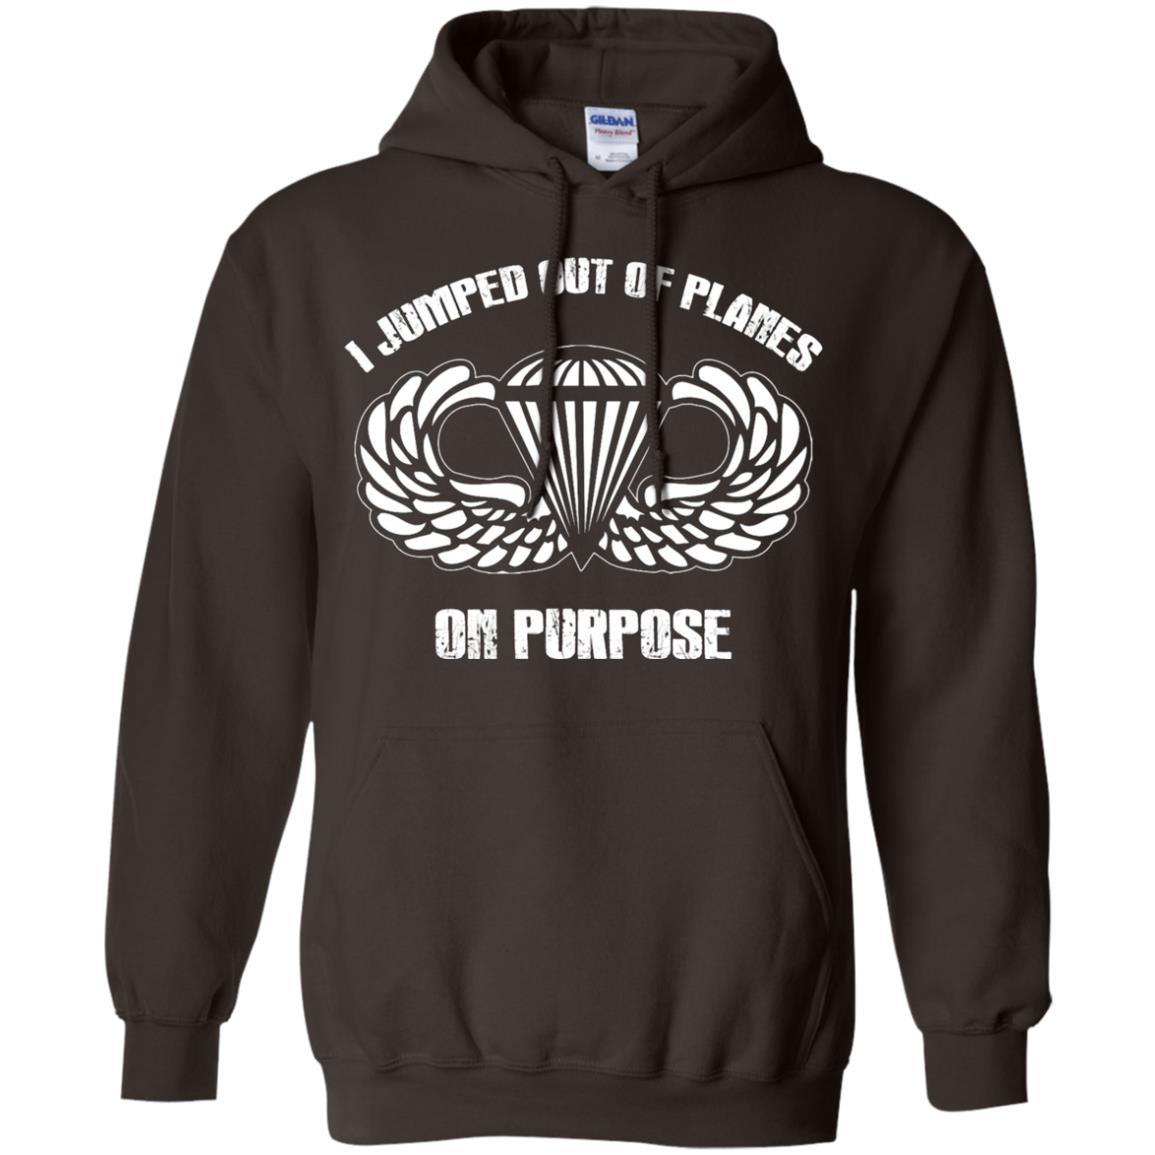 I jumped out of planes on purpose, Airborne - Pullover Hoodie Dark Chocolate / 5XL